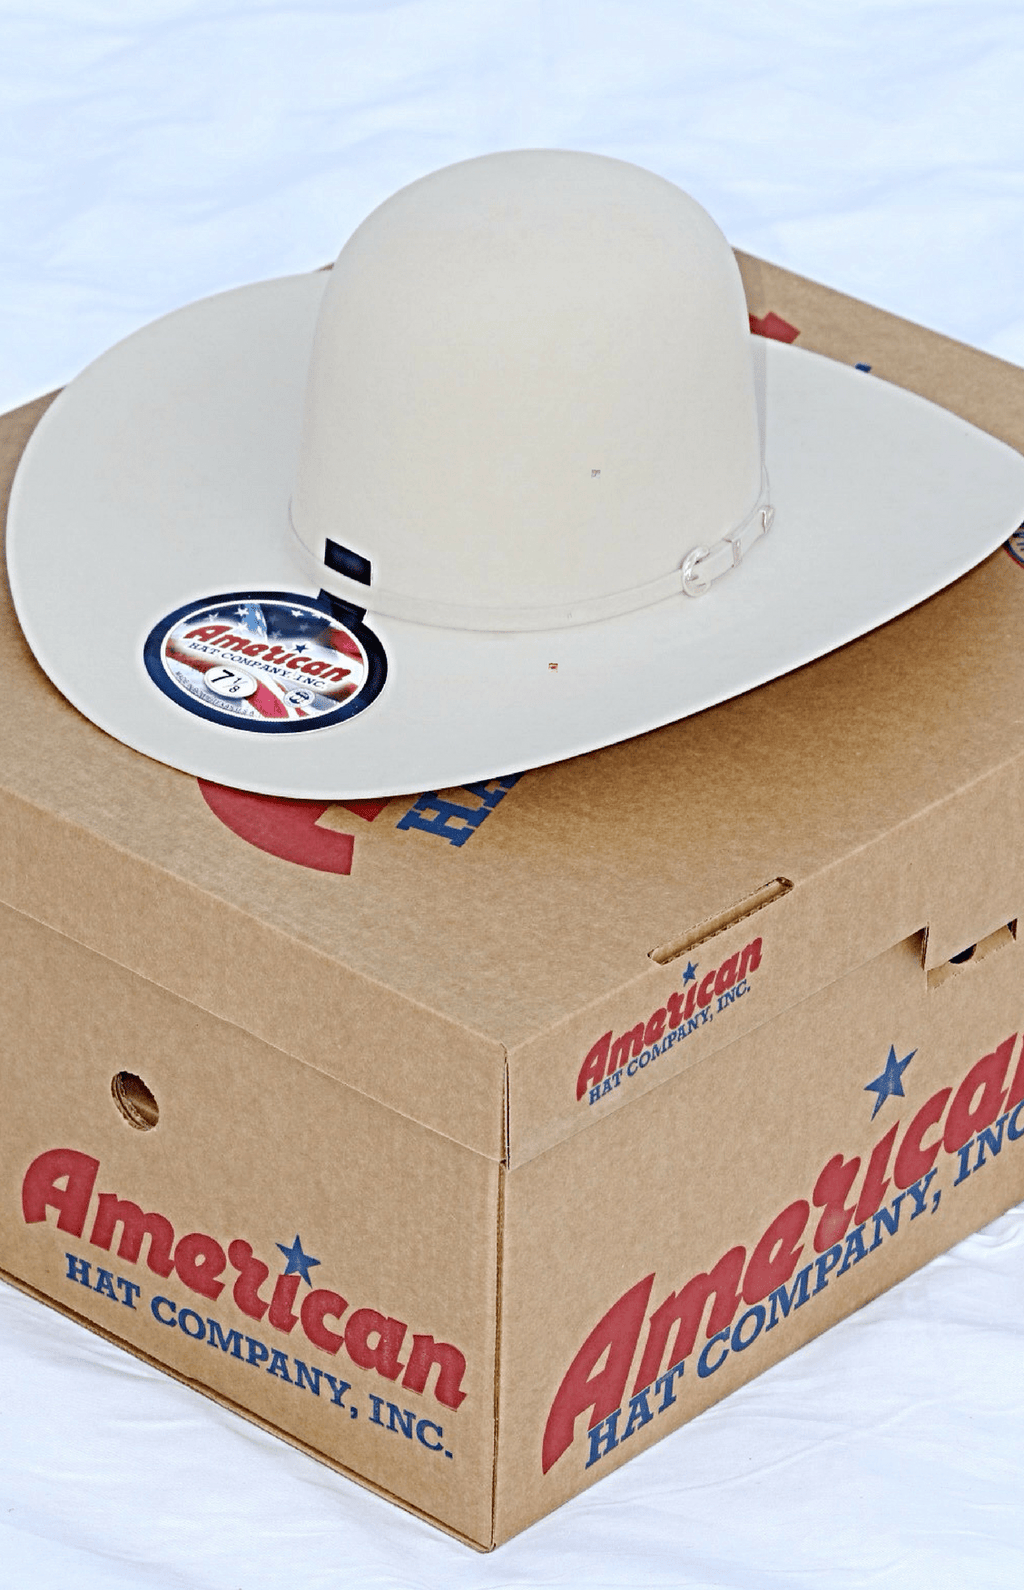 40 X Silver Belly  American | Cody's Cowboy hats